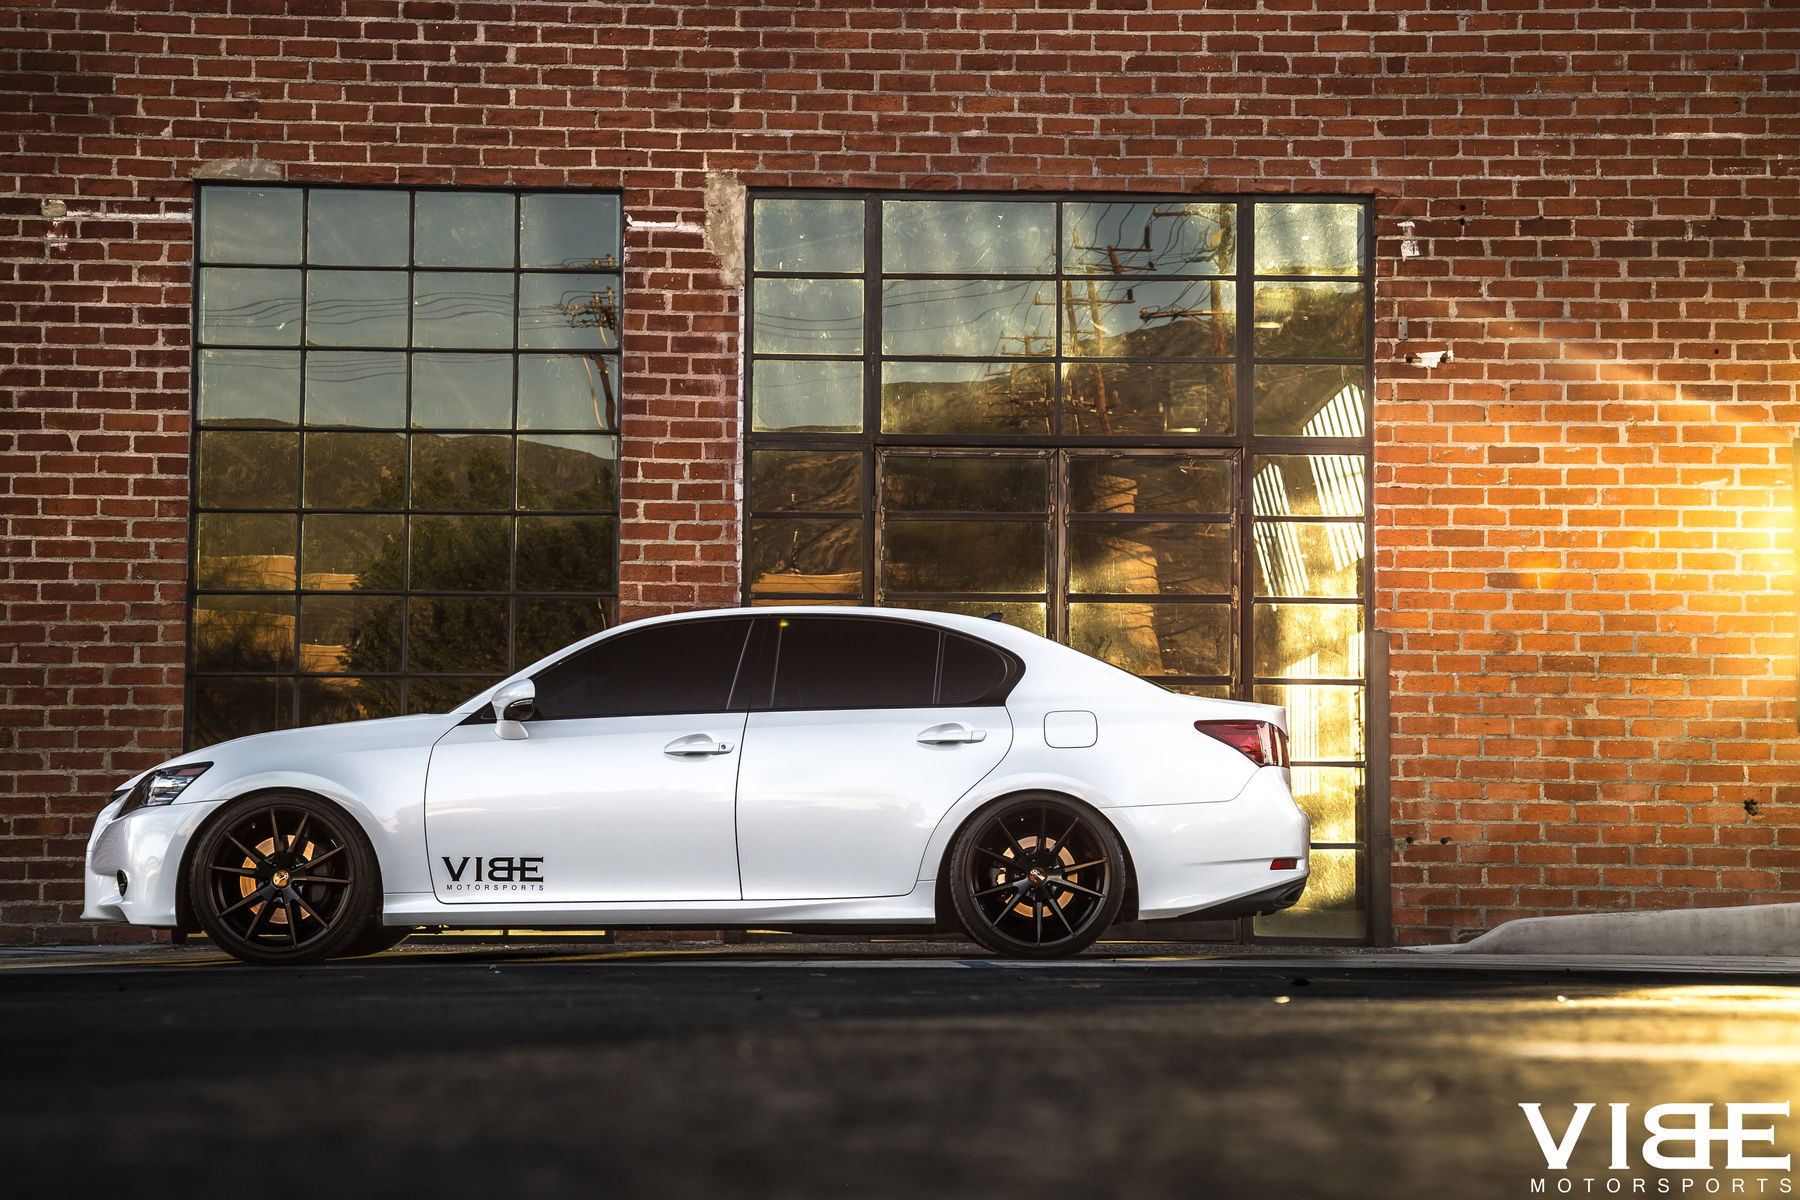 2014 Lexus GS 350 | Lexus GS350 on Gianelle Wheels - Side Profile Shot